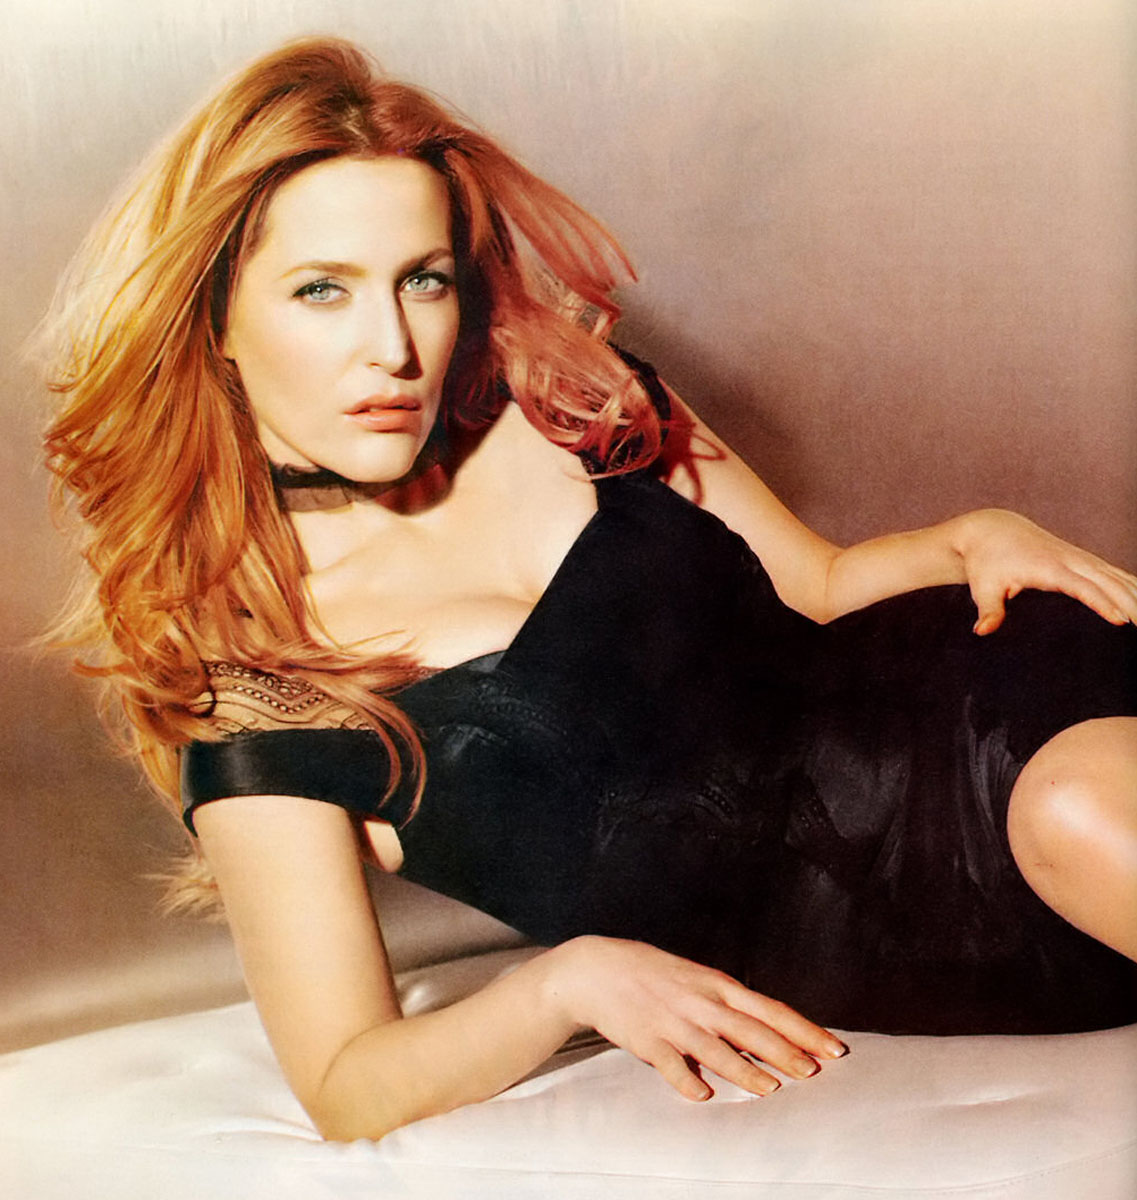 1137x1200 - Gillian Anderson Wallpapers 16